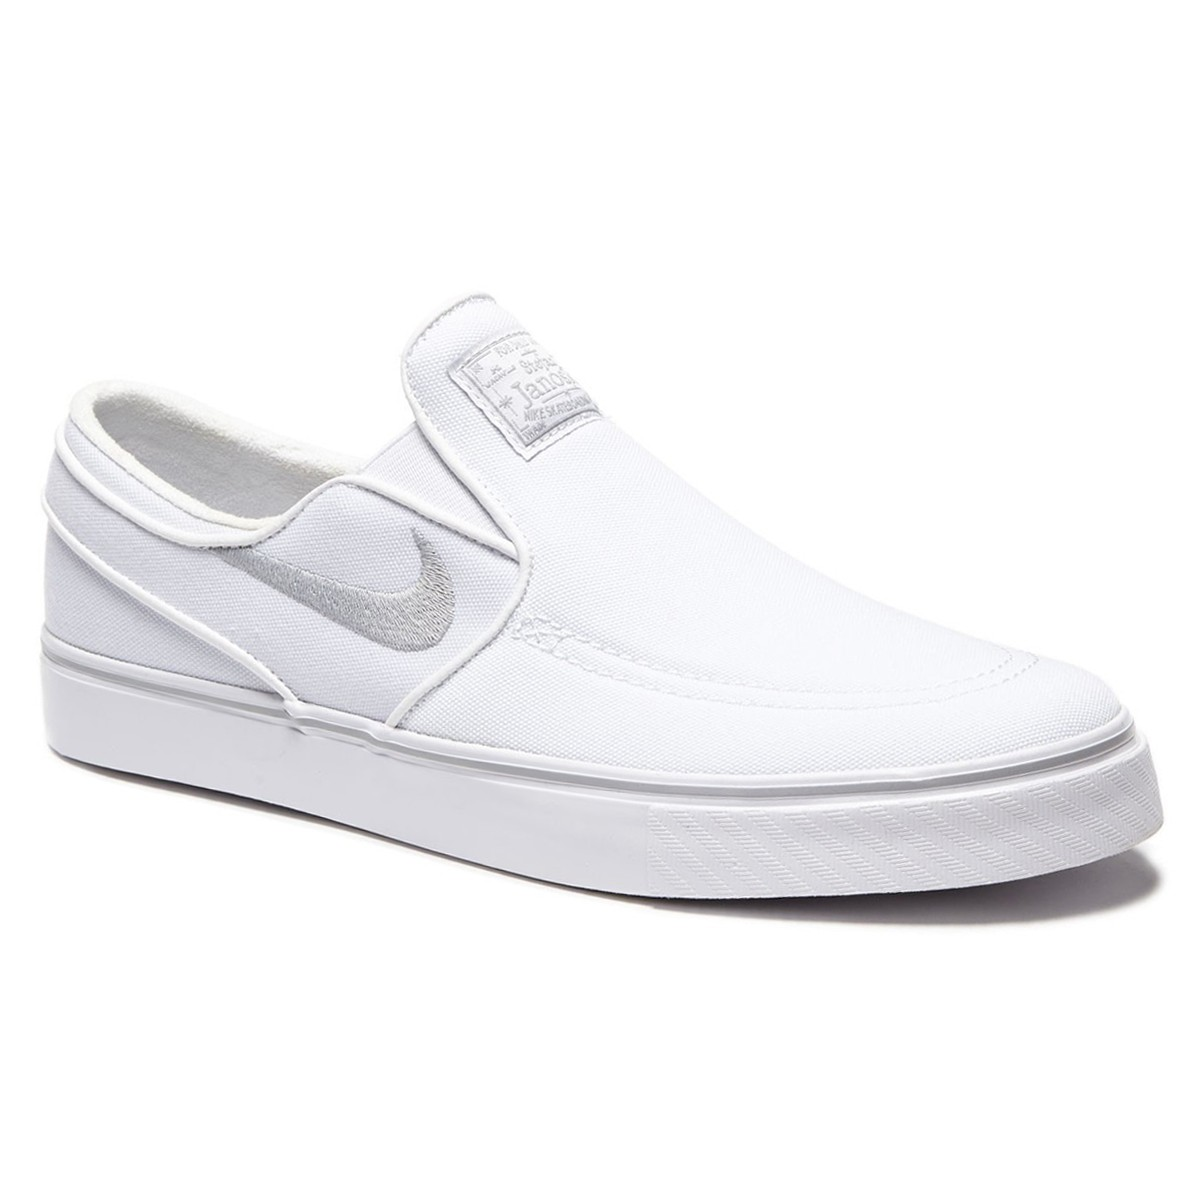 892d01467e36 Nike Zoom Stefan Janoski Slip-On Canvas Shoes